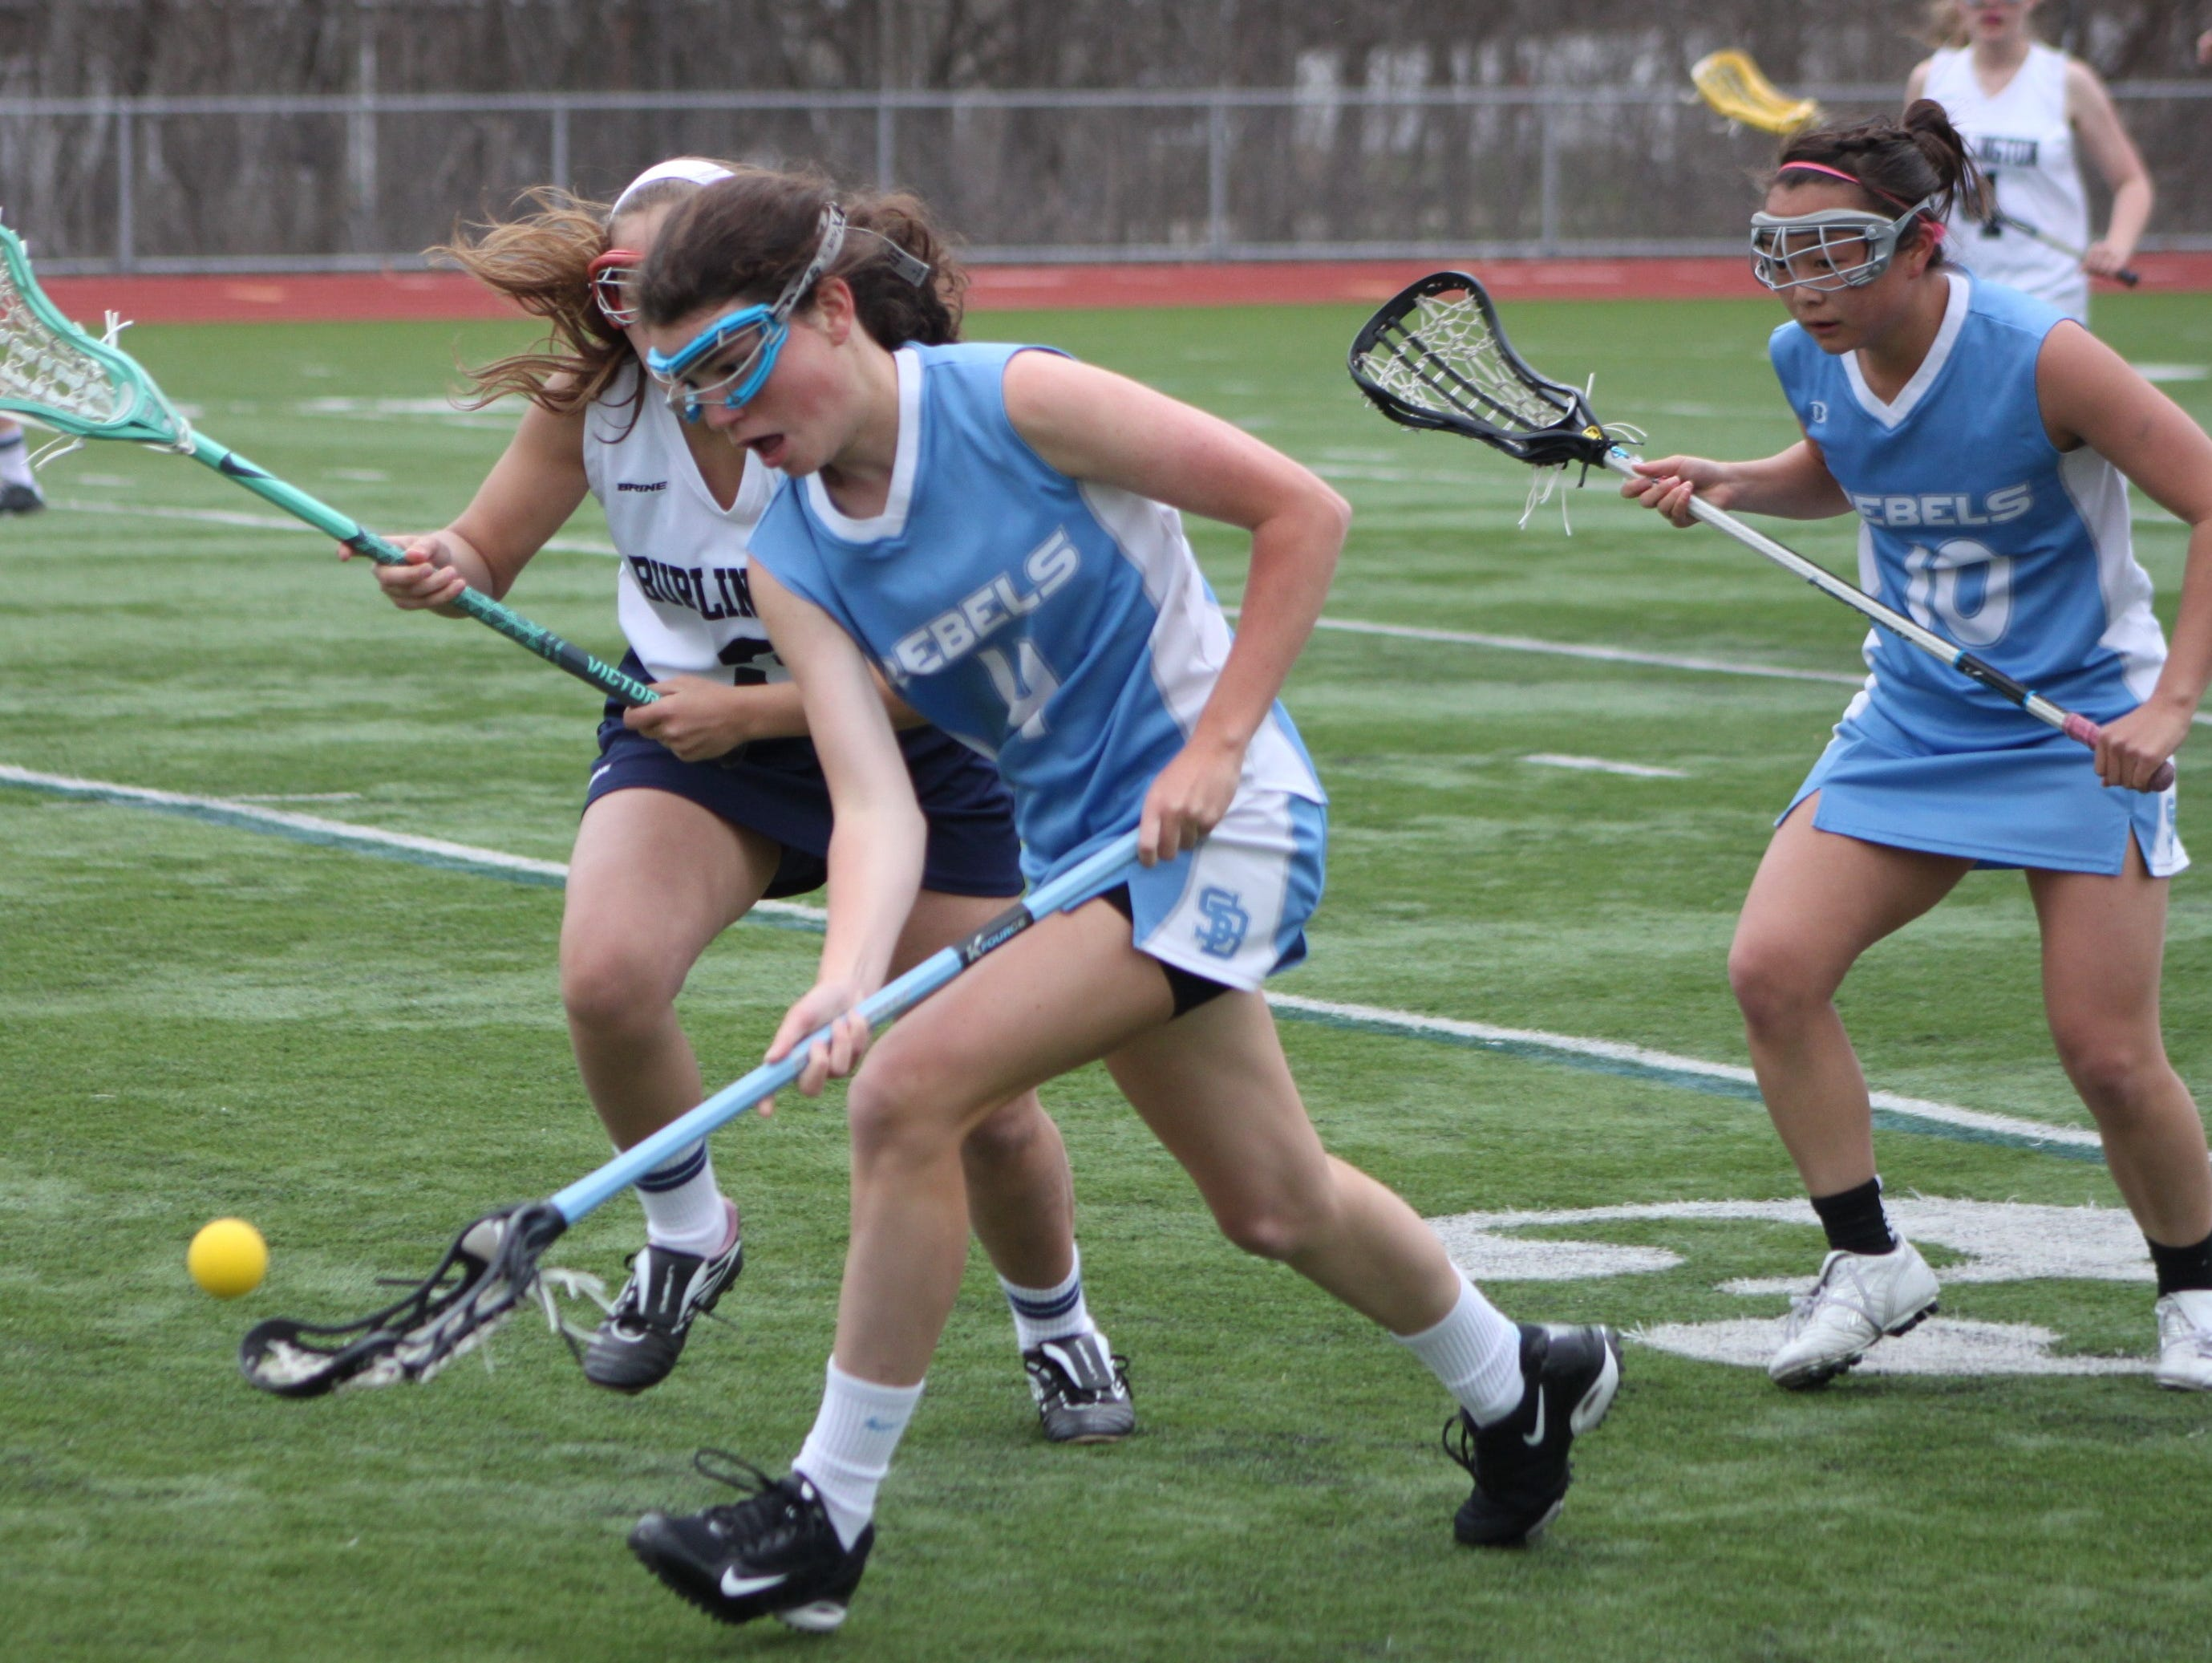 South Burlington's Mia Wood scoops up the ball during a girls lacrosse game at Burlington High School earlier this season.